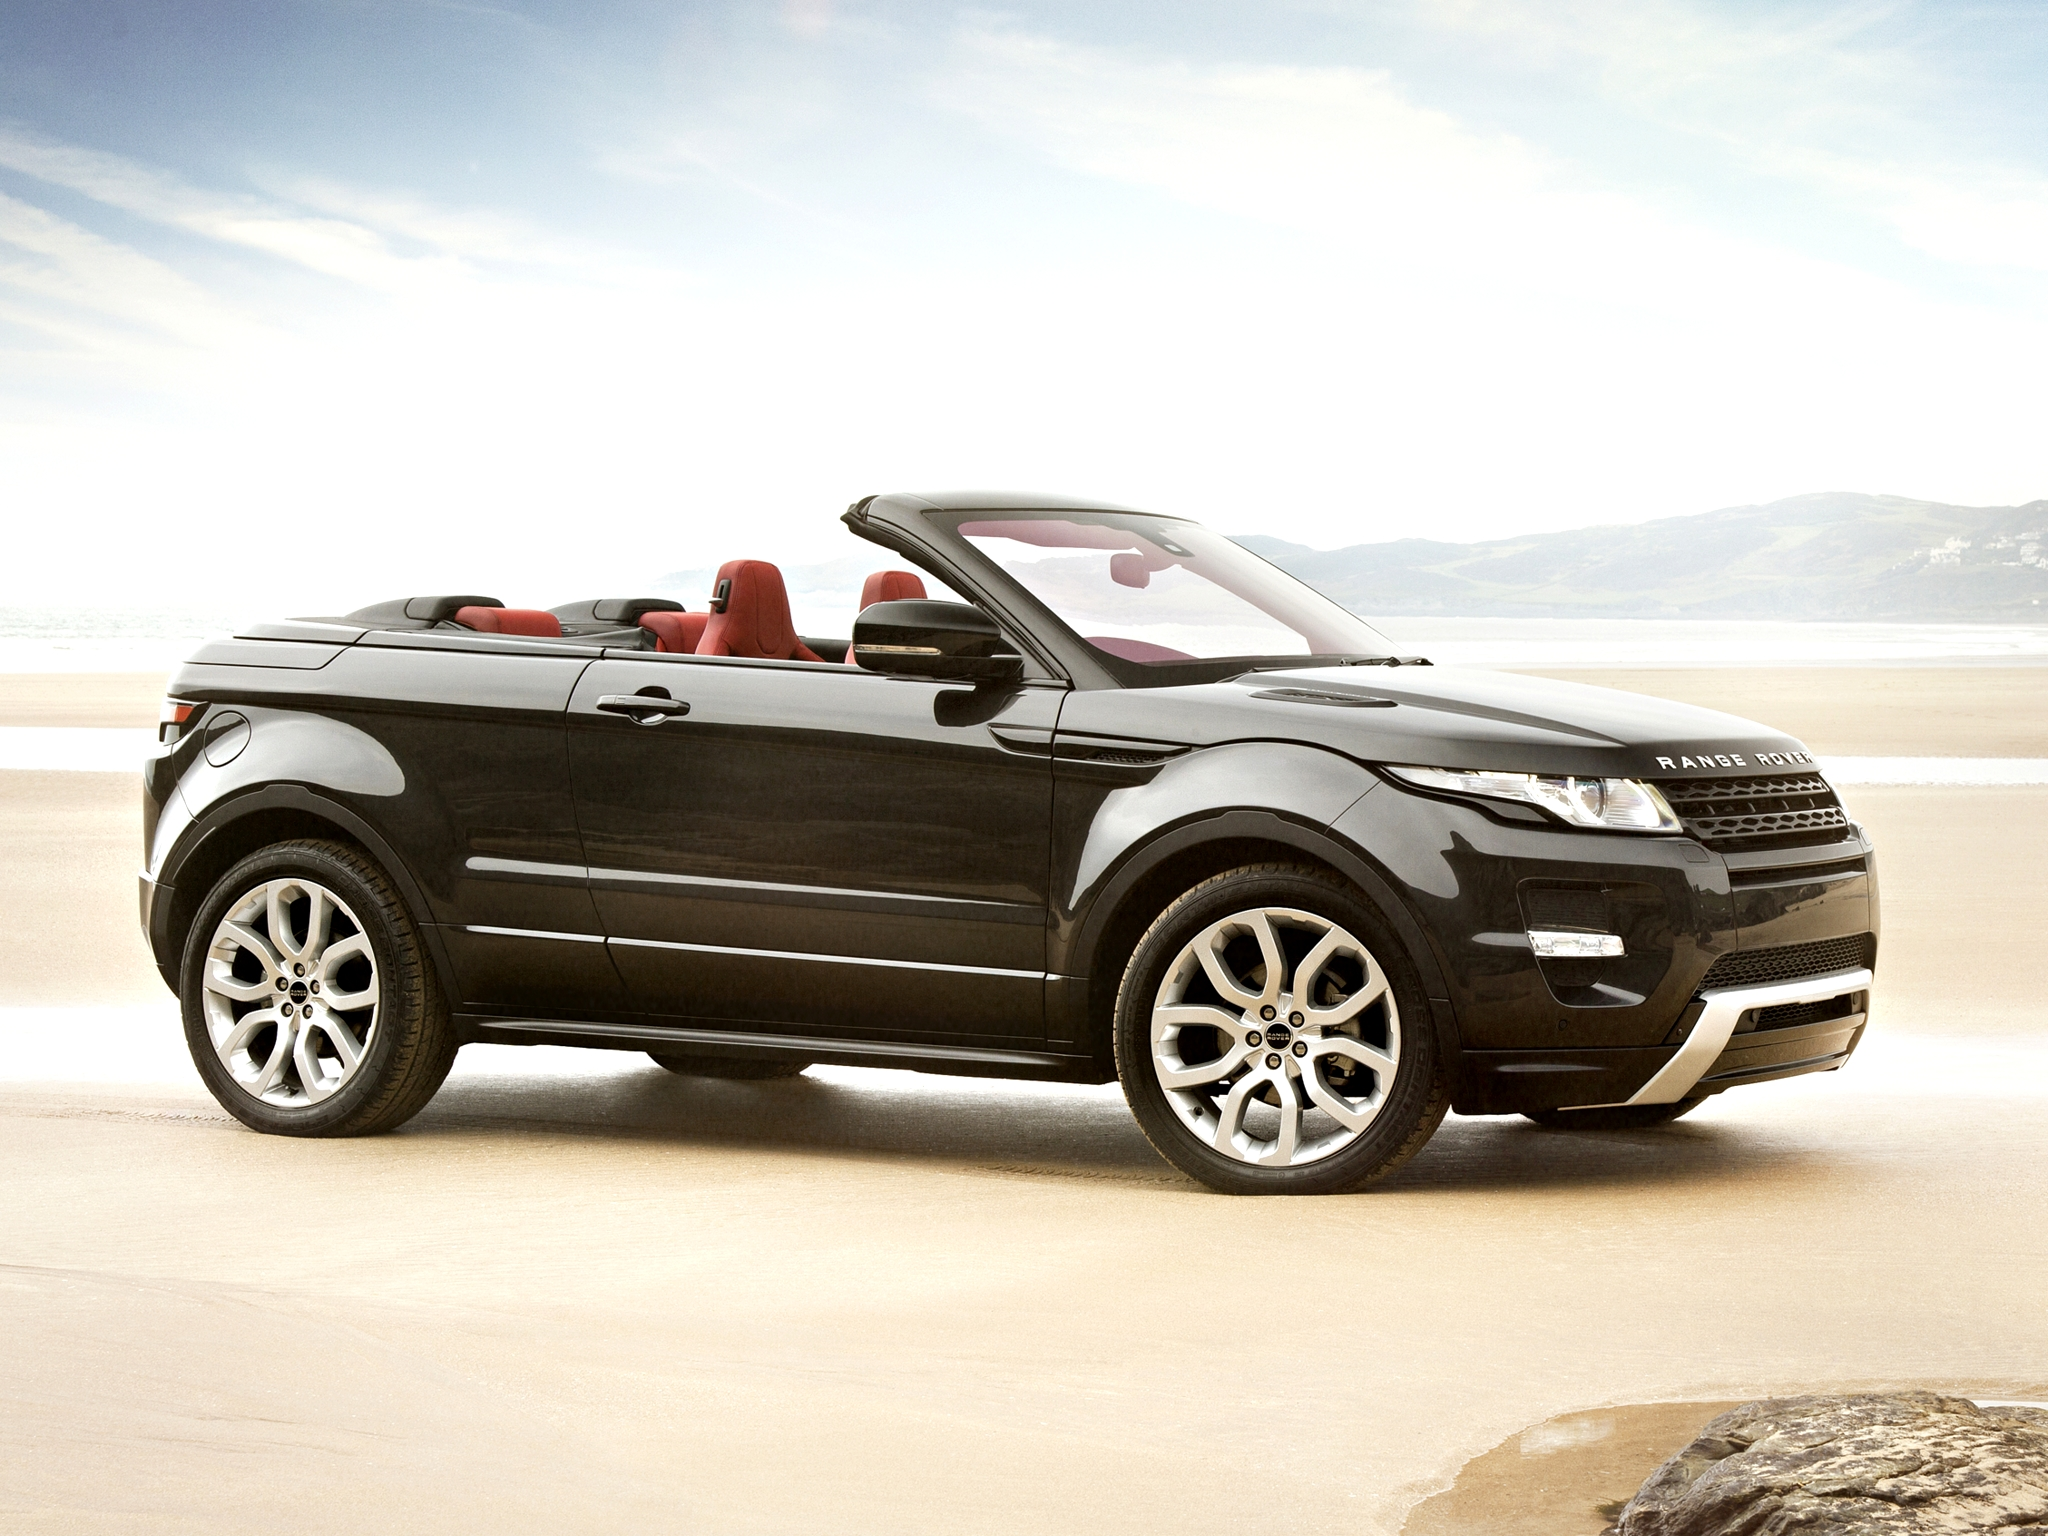 range rover evoque convertible enters production in 2014. Black Bedroom Furniture Sets. Home Design Ideas